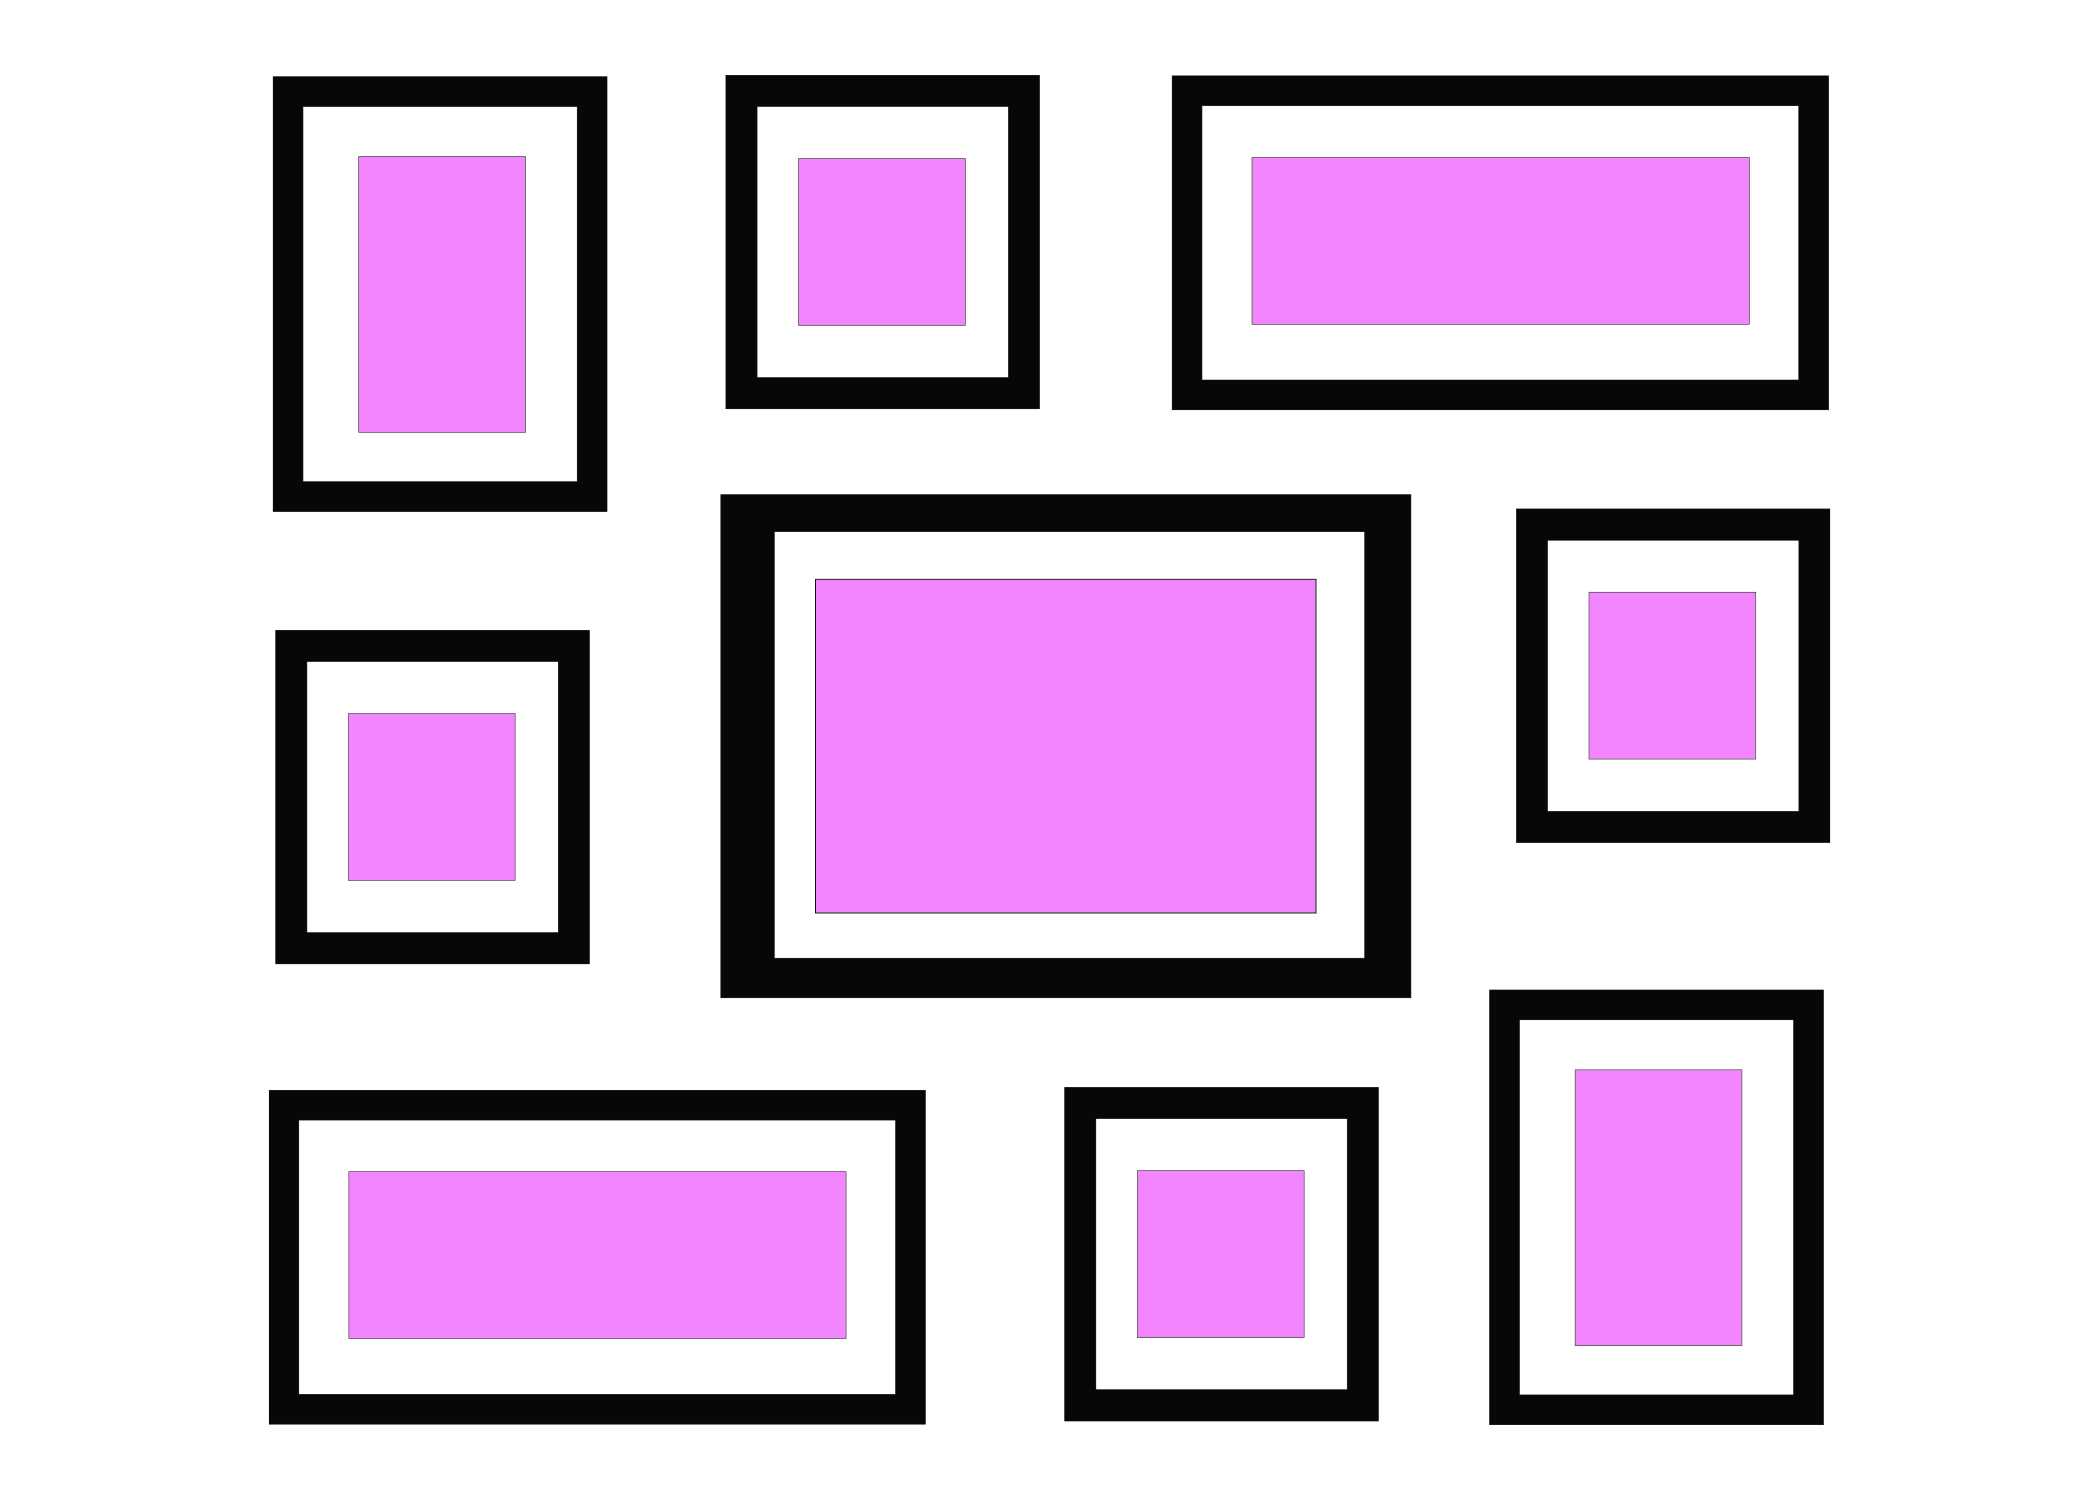 ALIGNED SHAPE – SPIRAL - This is another kind of aligned shape. This is handy if you've got all different sizes and shapes but want to make a neat and orderly wall.